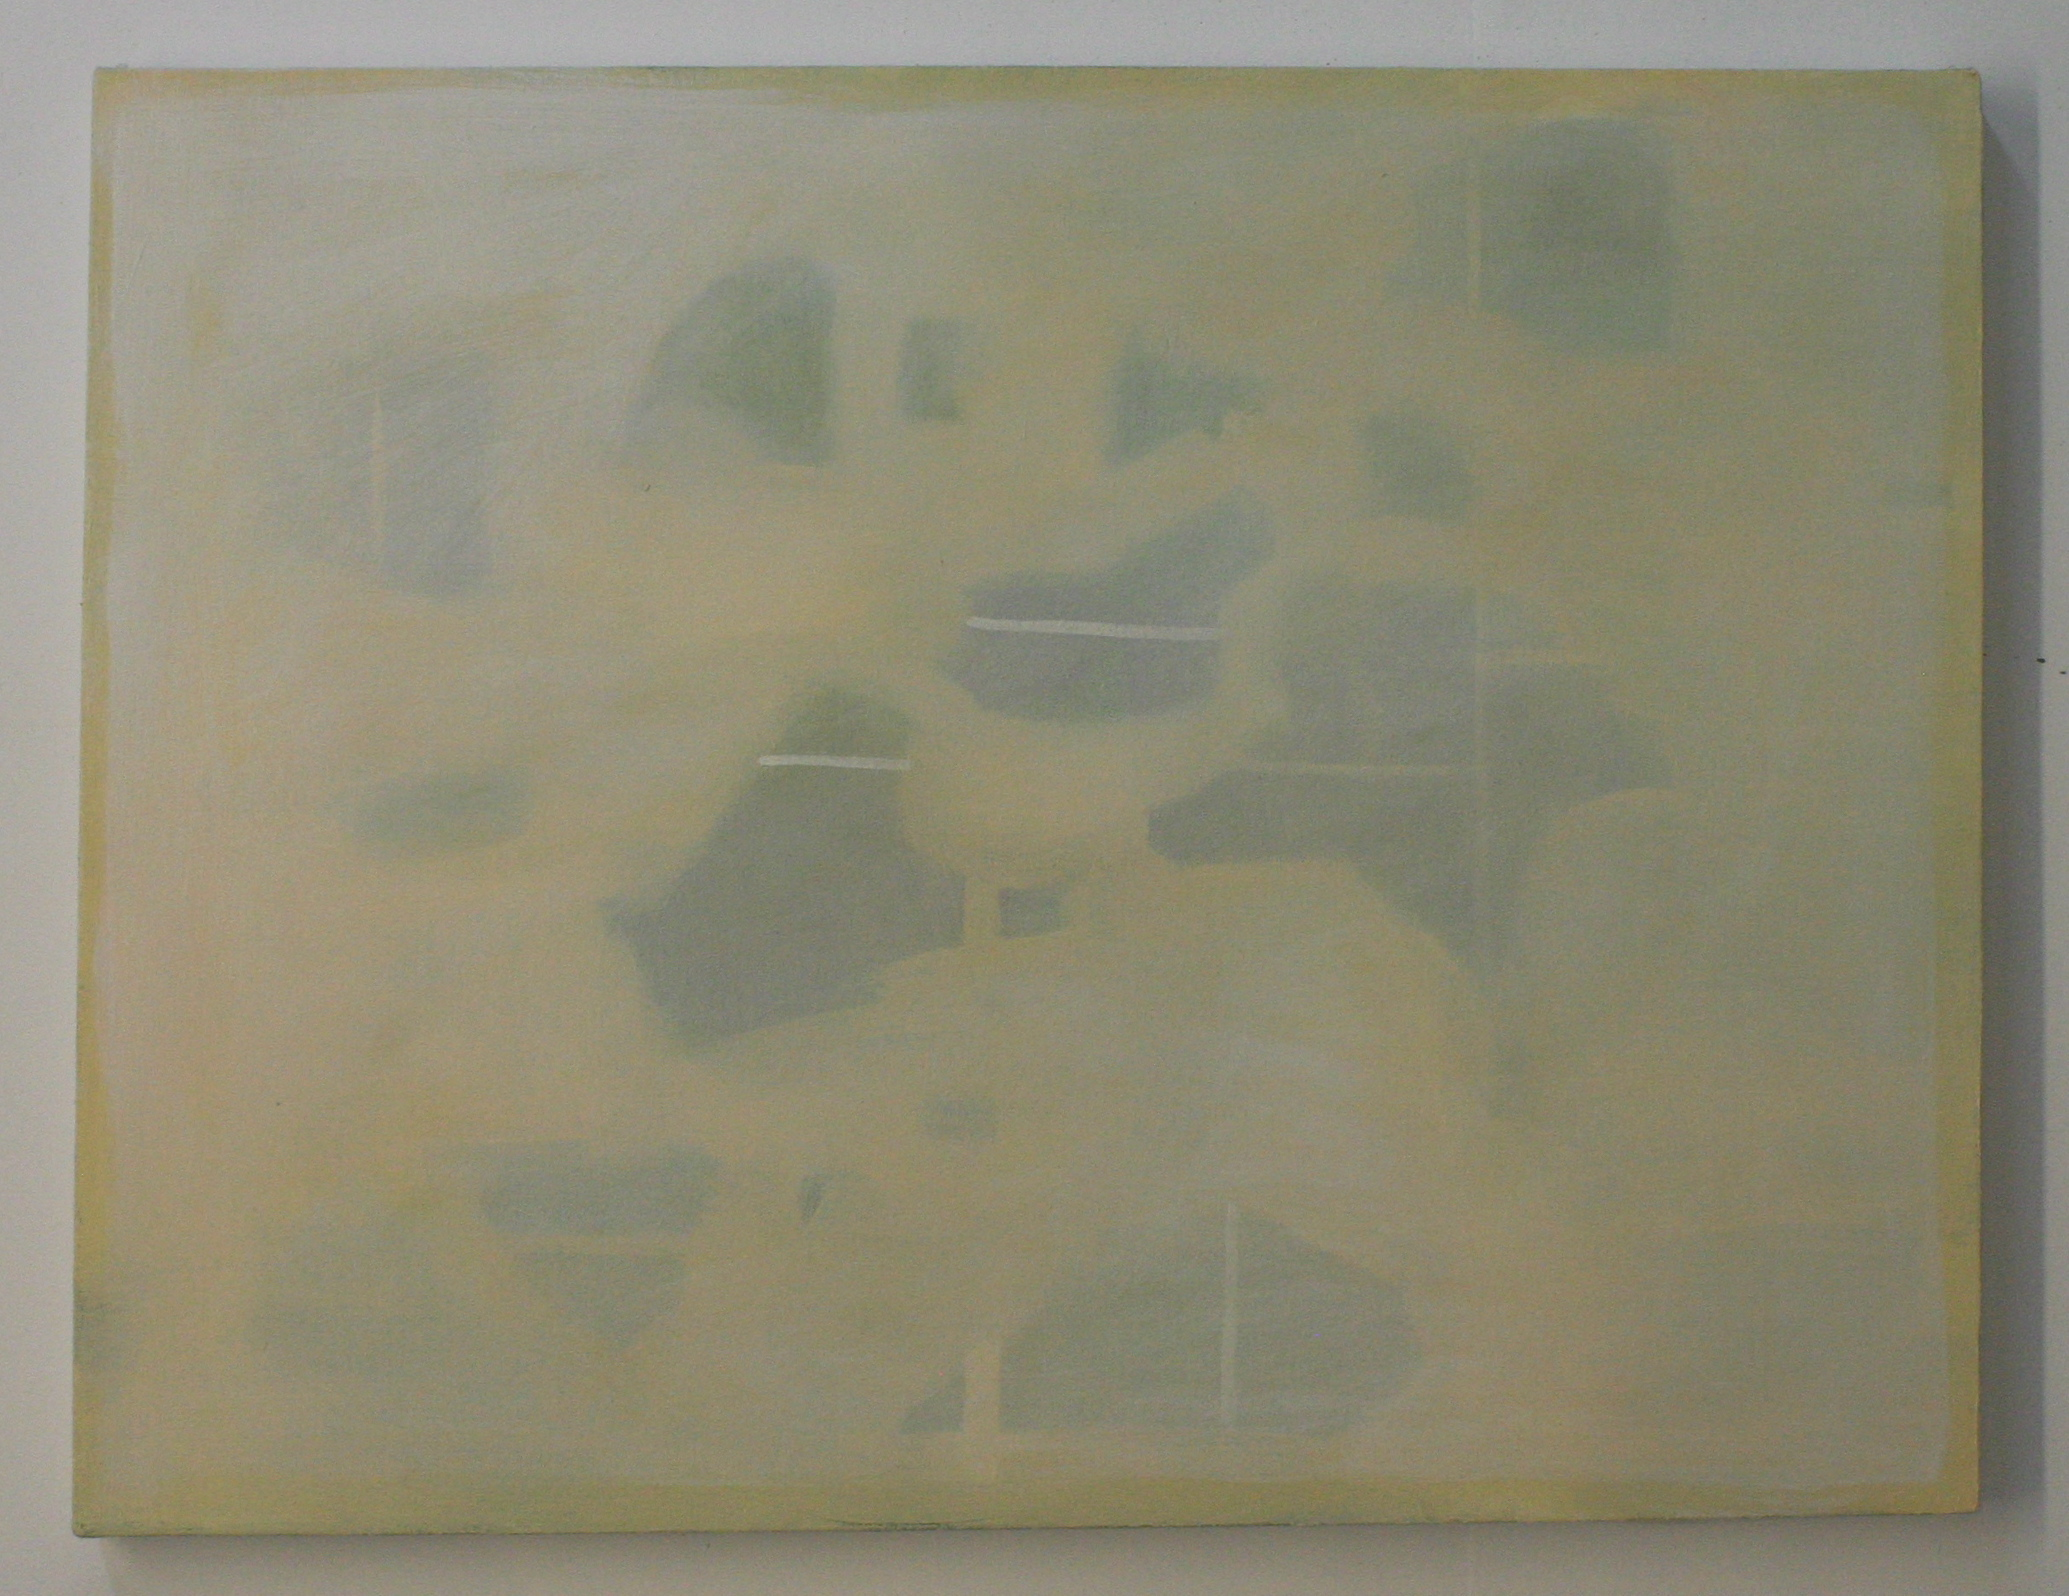 Archipelago #2, 2012, oil on canvas, 26 x 34 inches